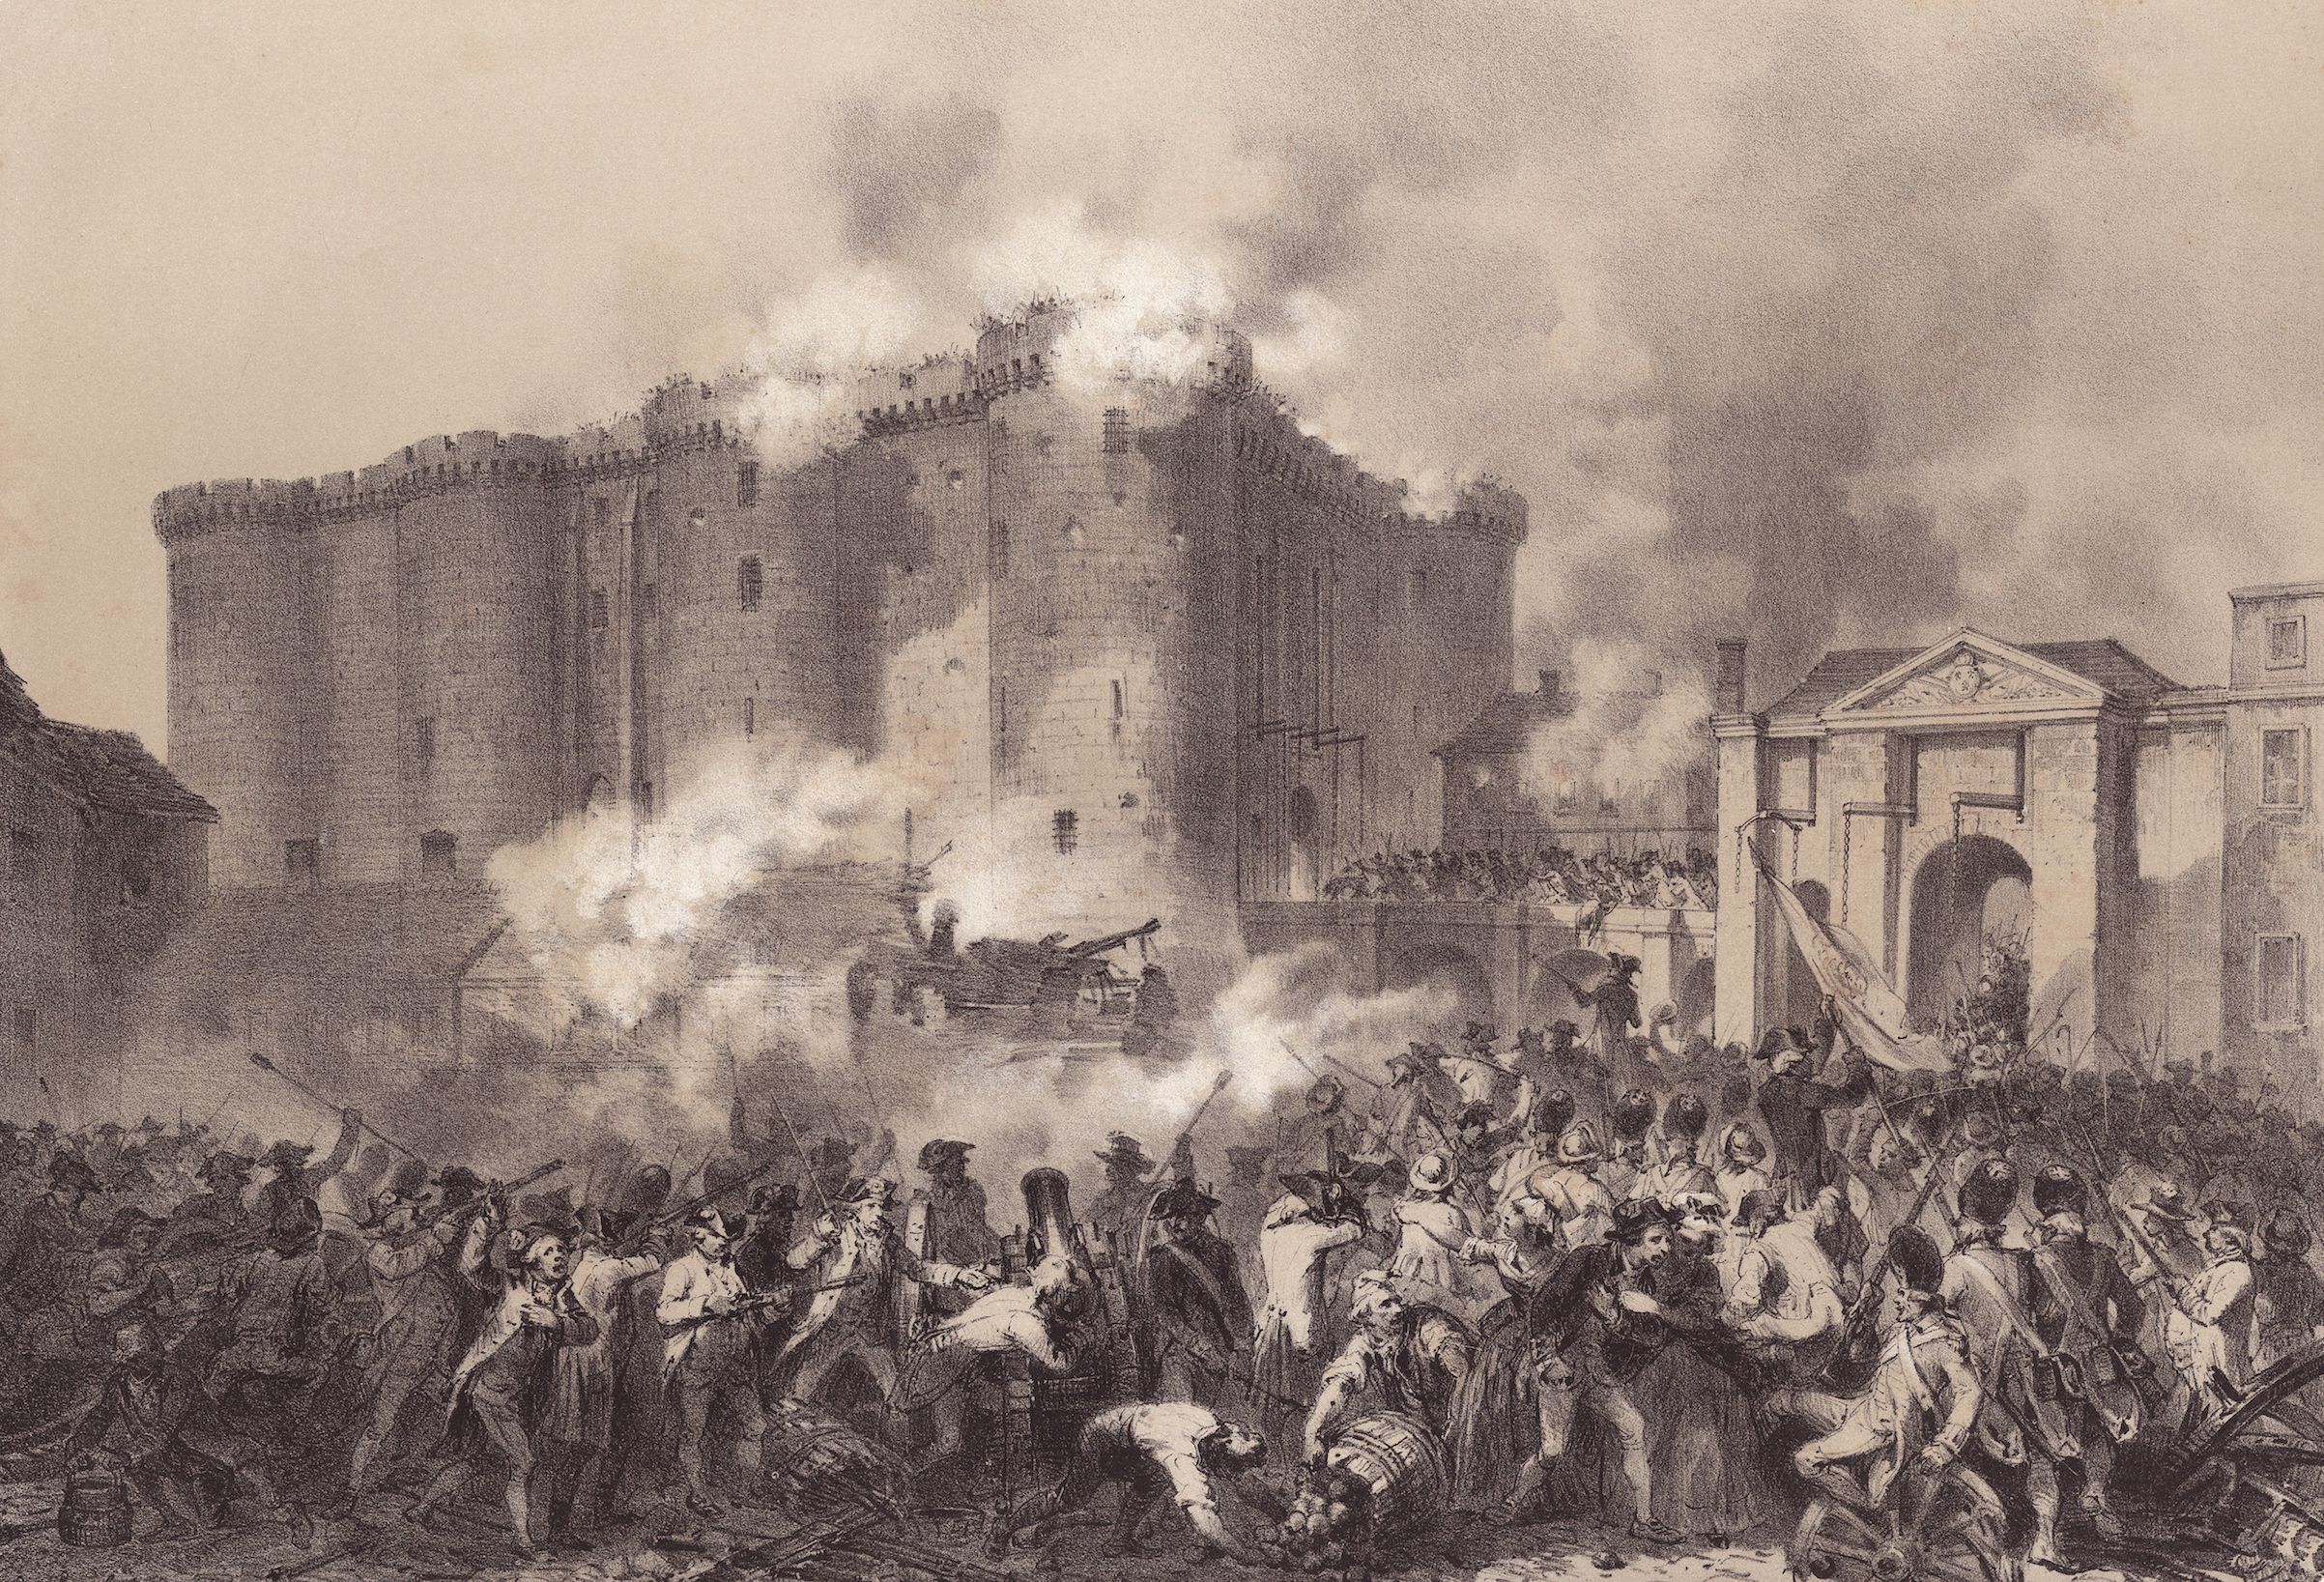 Lithograph of the the storming of the Bastille in on July 14, 1789.